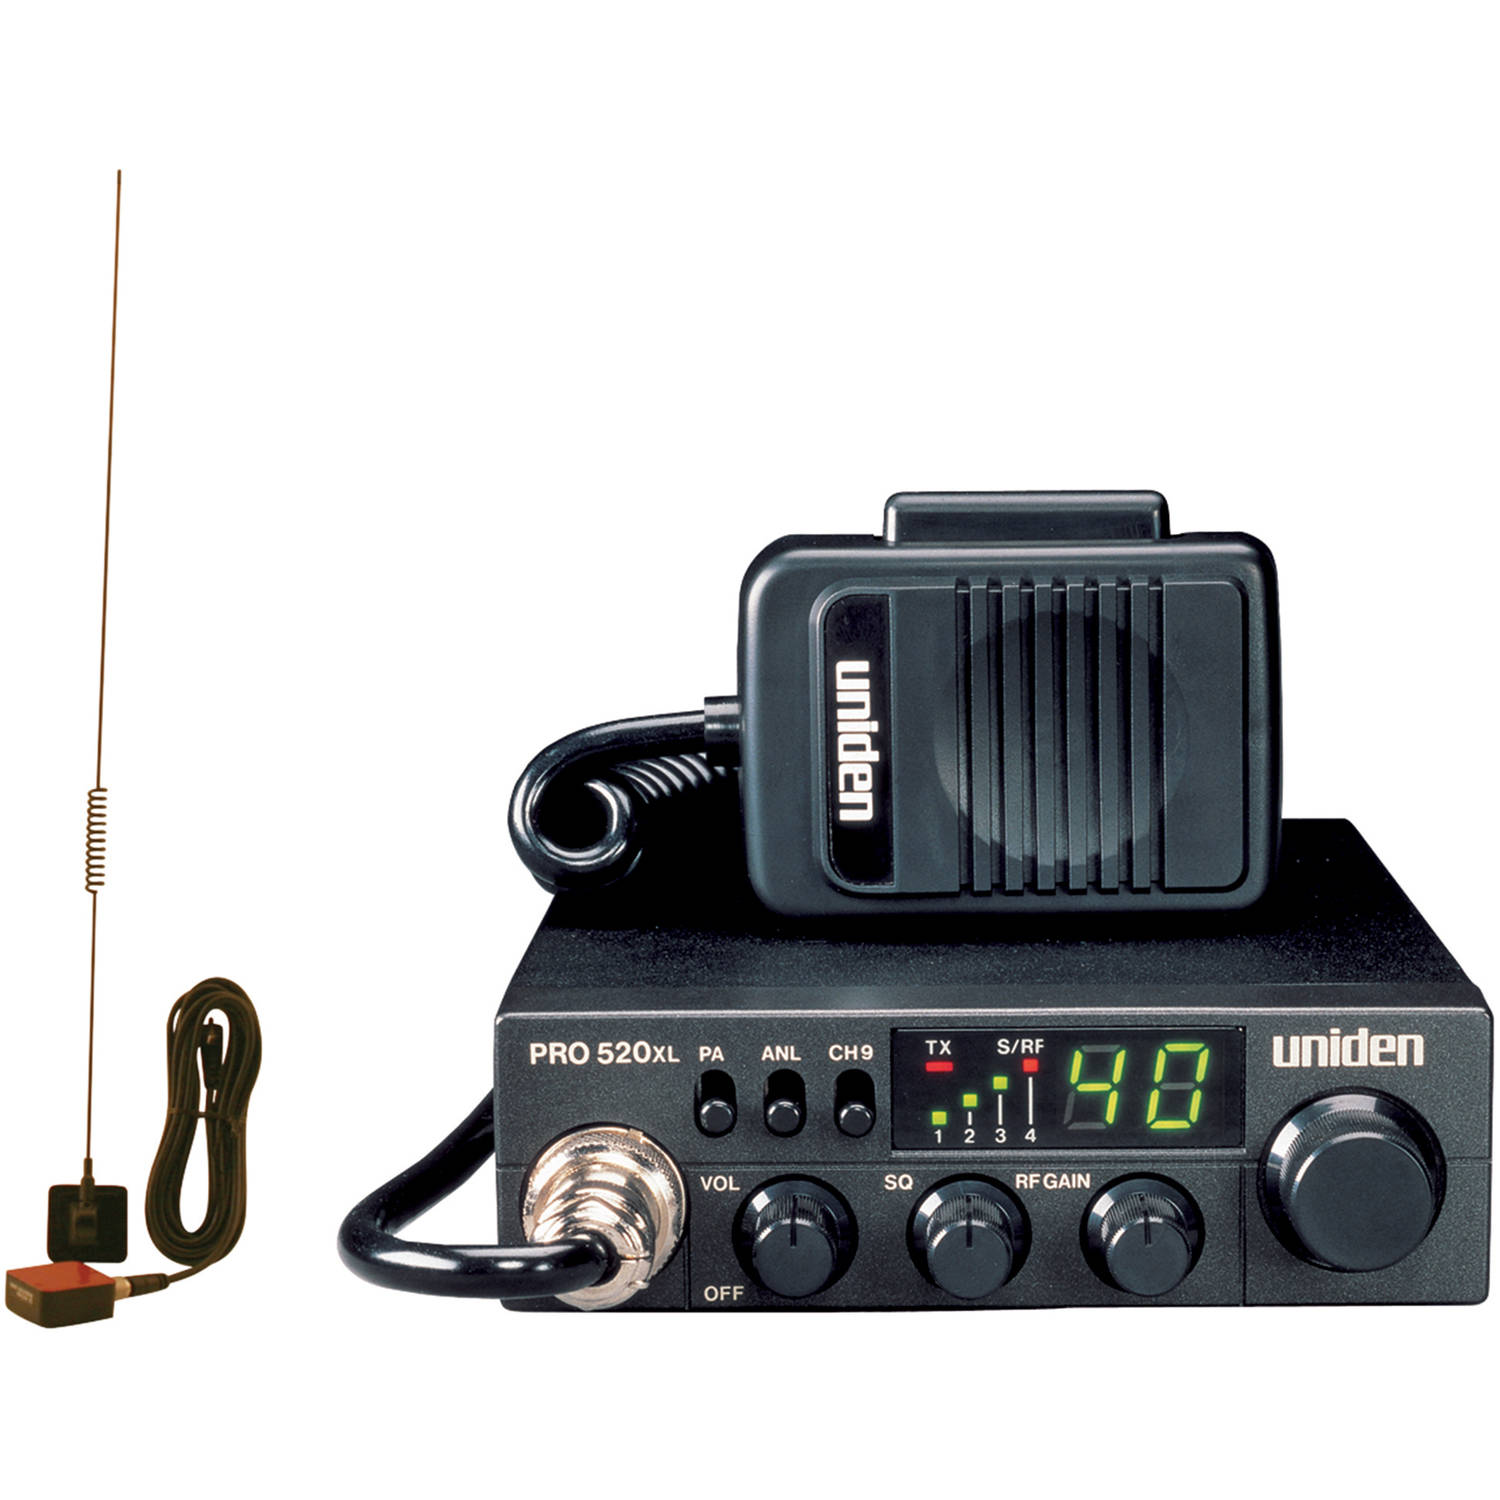 Uniden PRO520XL 40-Channel 4-Watt Compact CB Radio and Tram 1198 Glass Mount CB With Weather-band Mobile Antenna